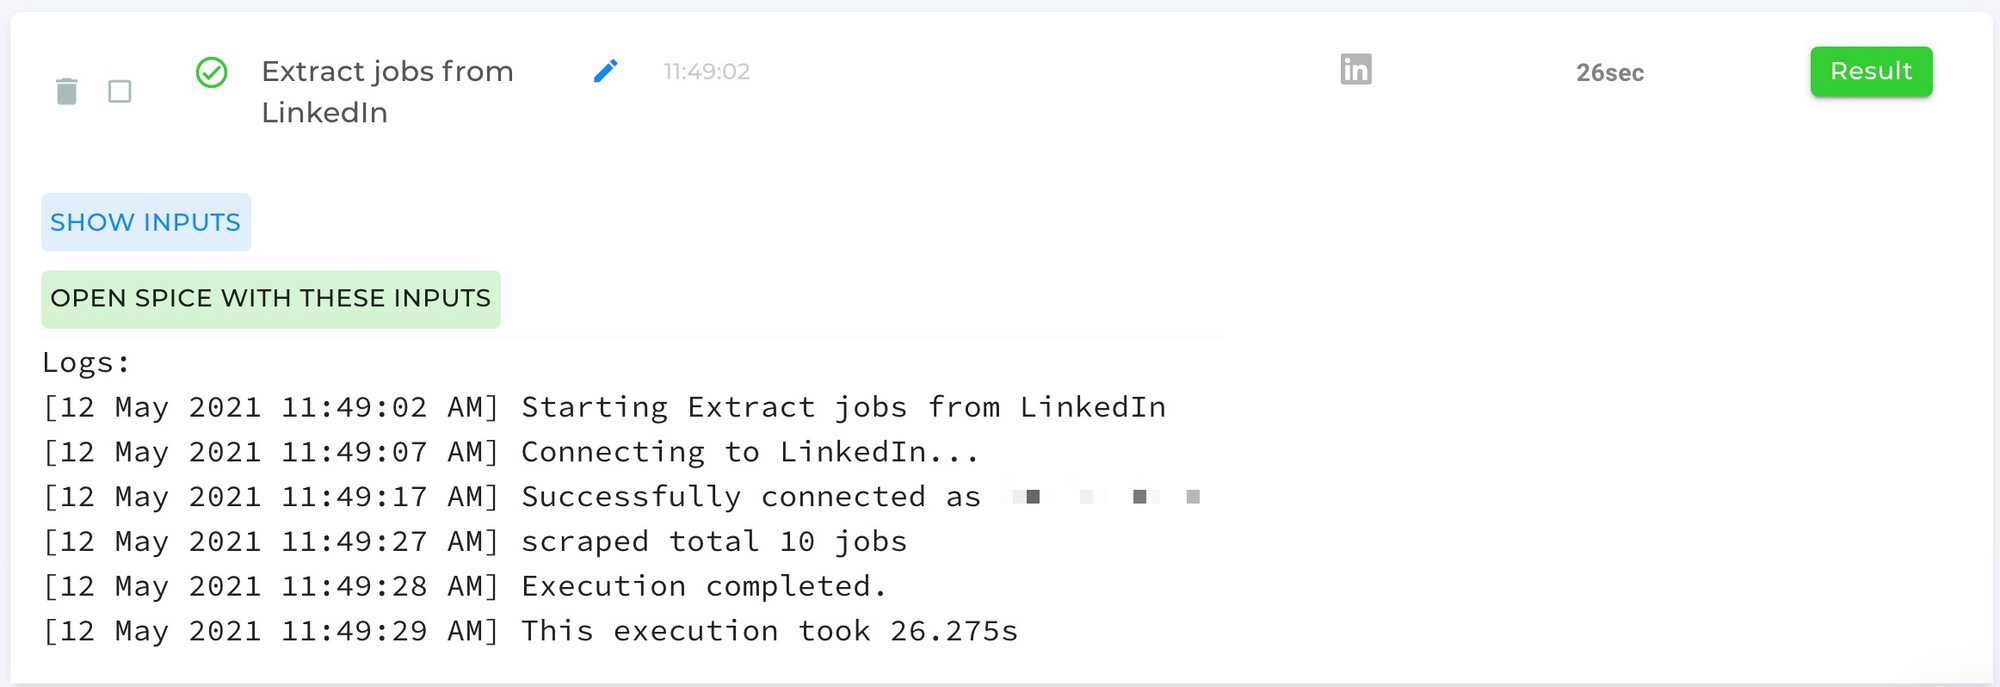 Extract Jobs from LinkedIn Automation Completed